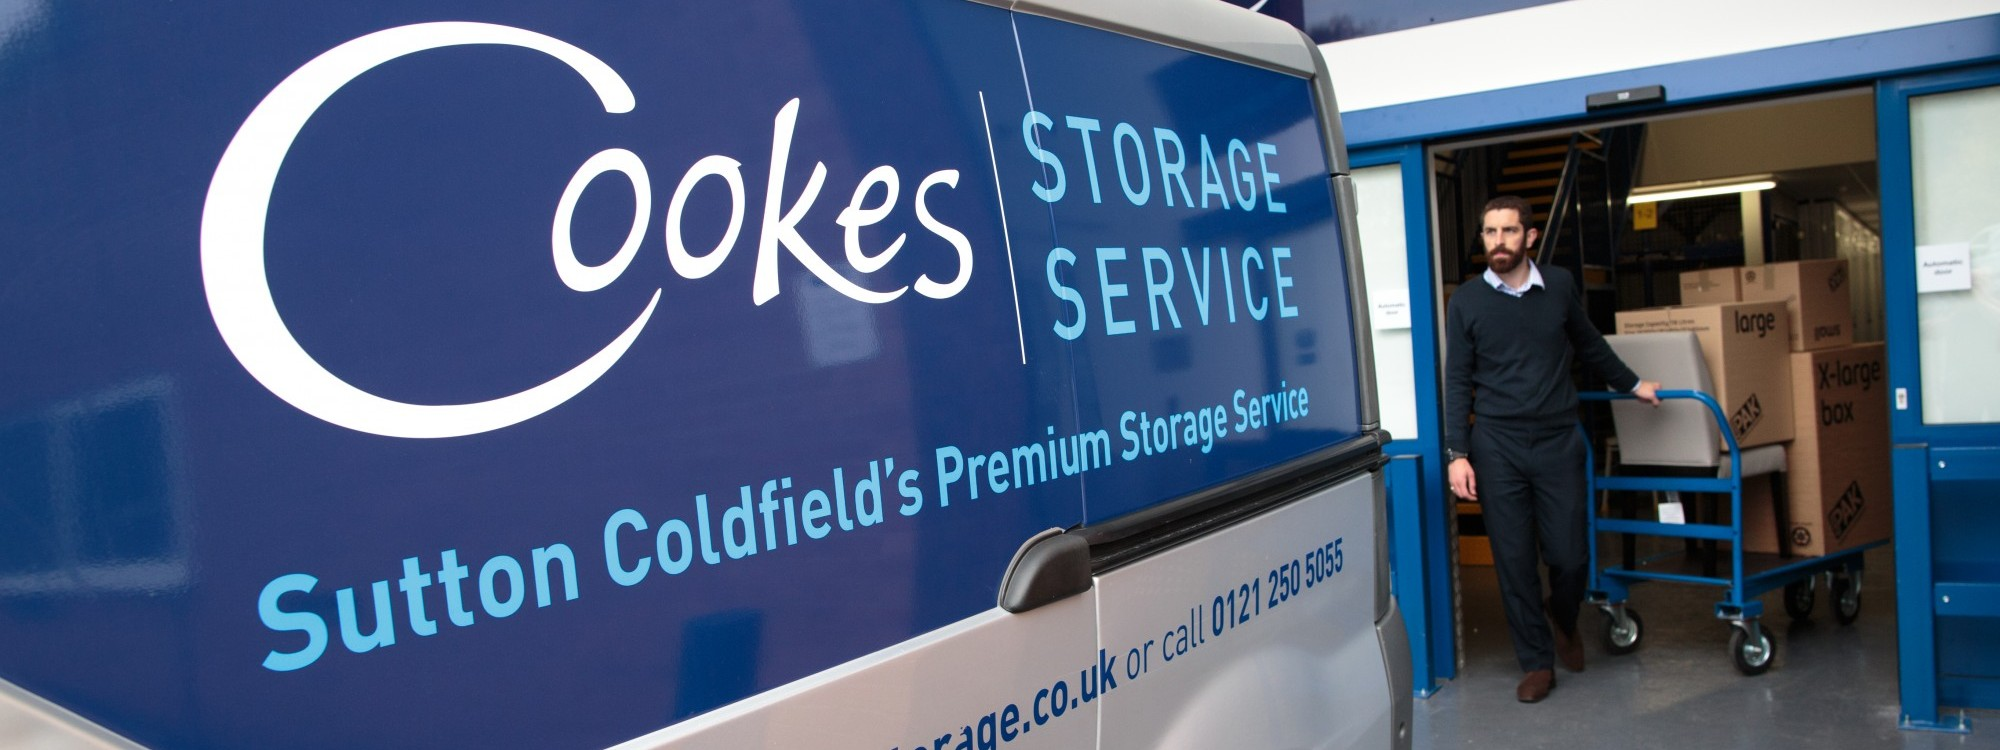 Business Storage Old Cookes Storage Service